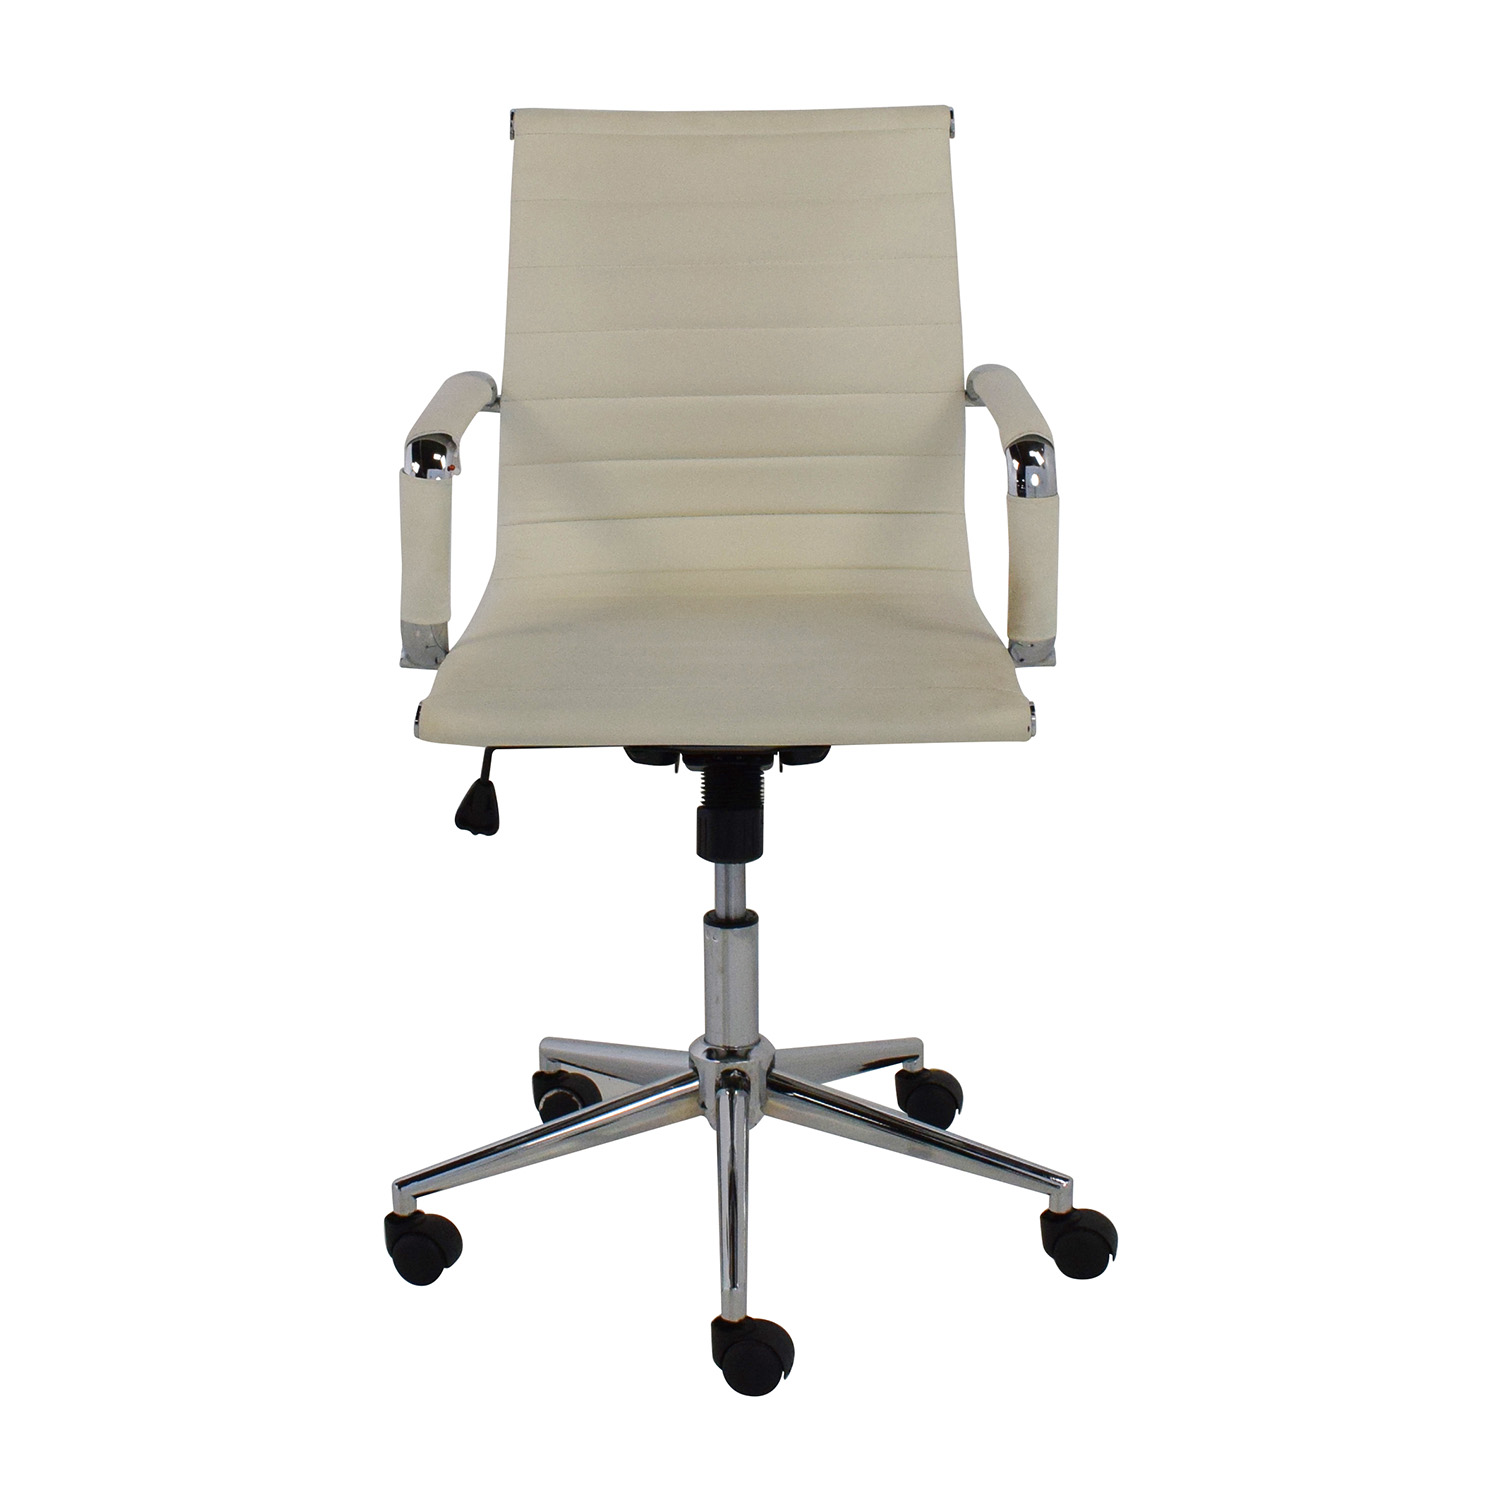 2xhome 2Xhome Modern Mid Back White Faux Leather Office Chair nj